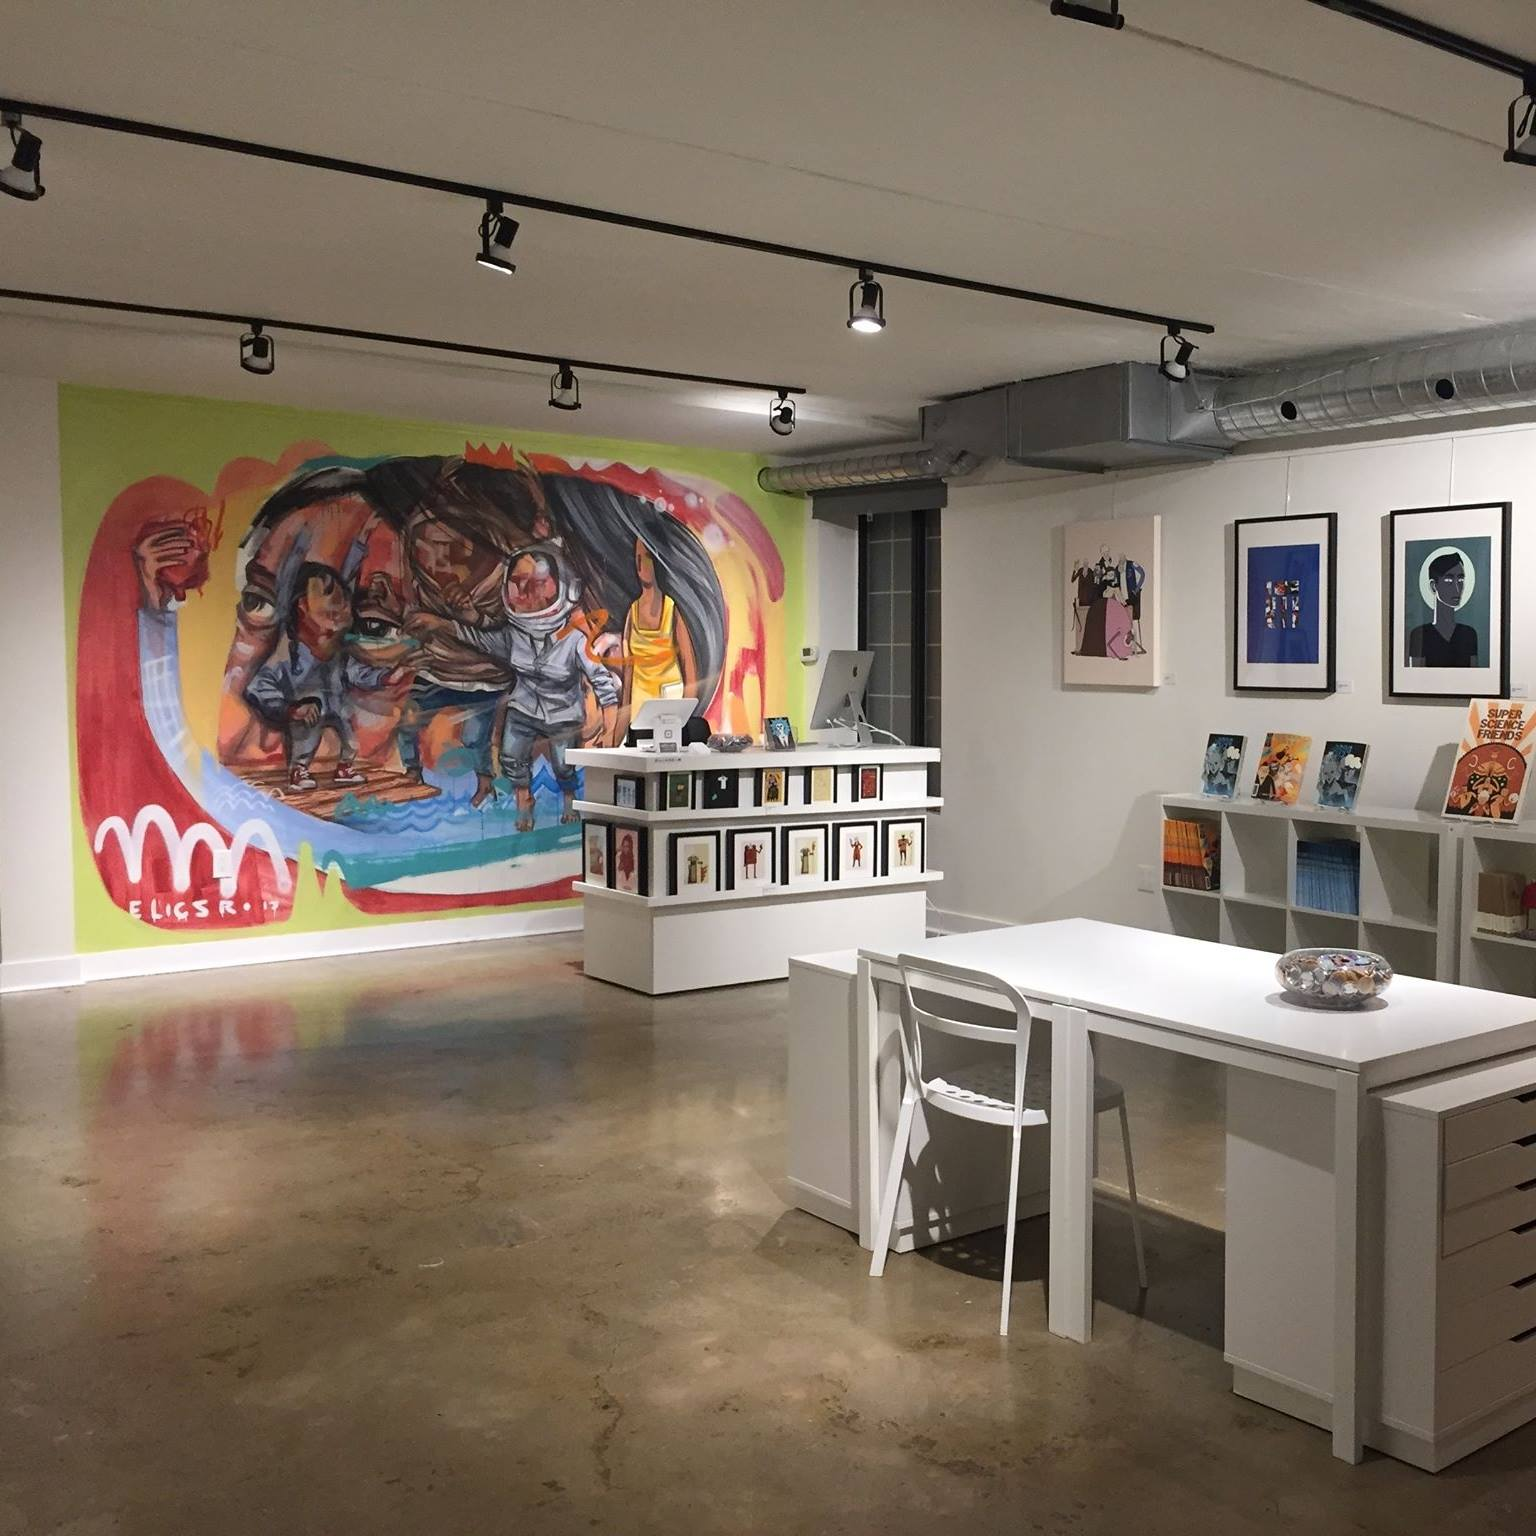 Liberty Arts Gallery, Elicser mural, art exhibitions and shows, launch parties art space